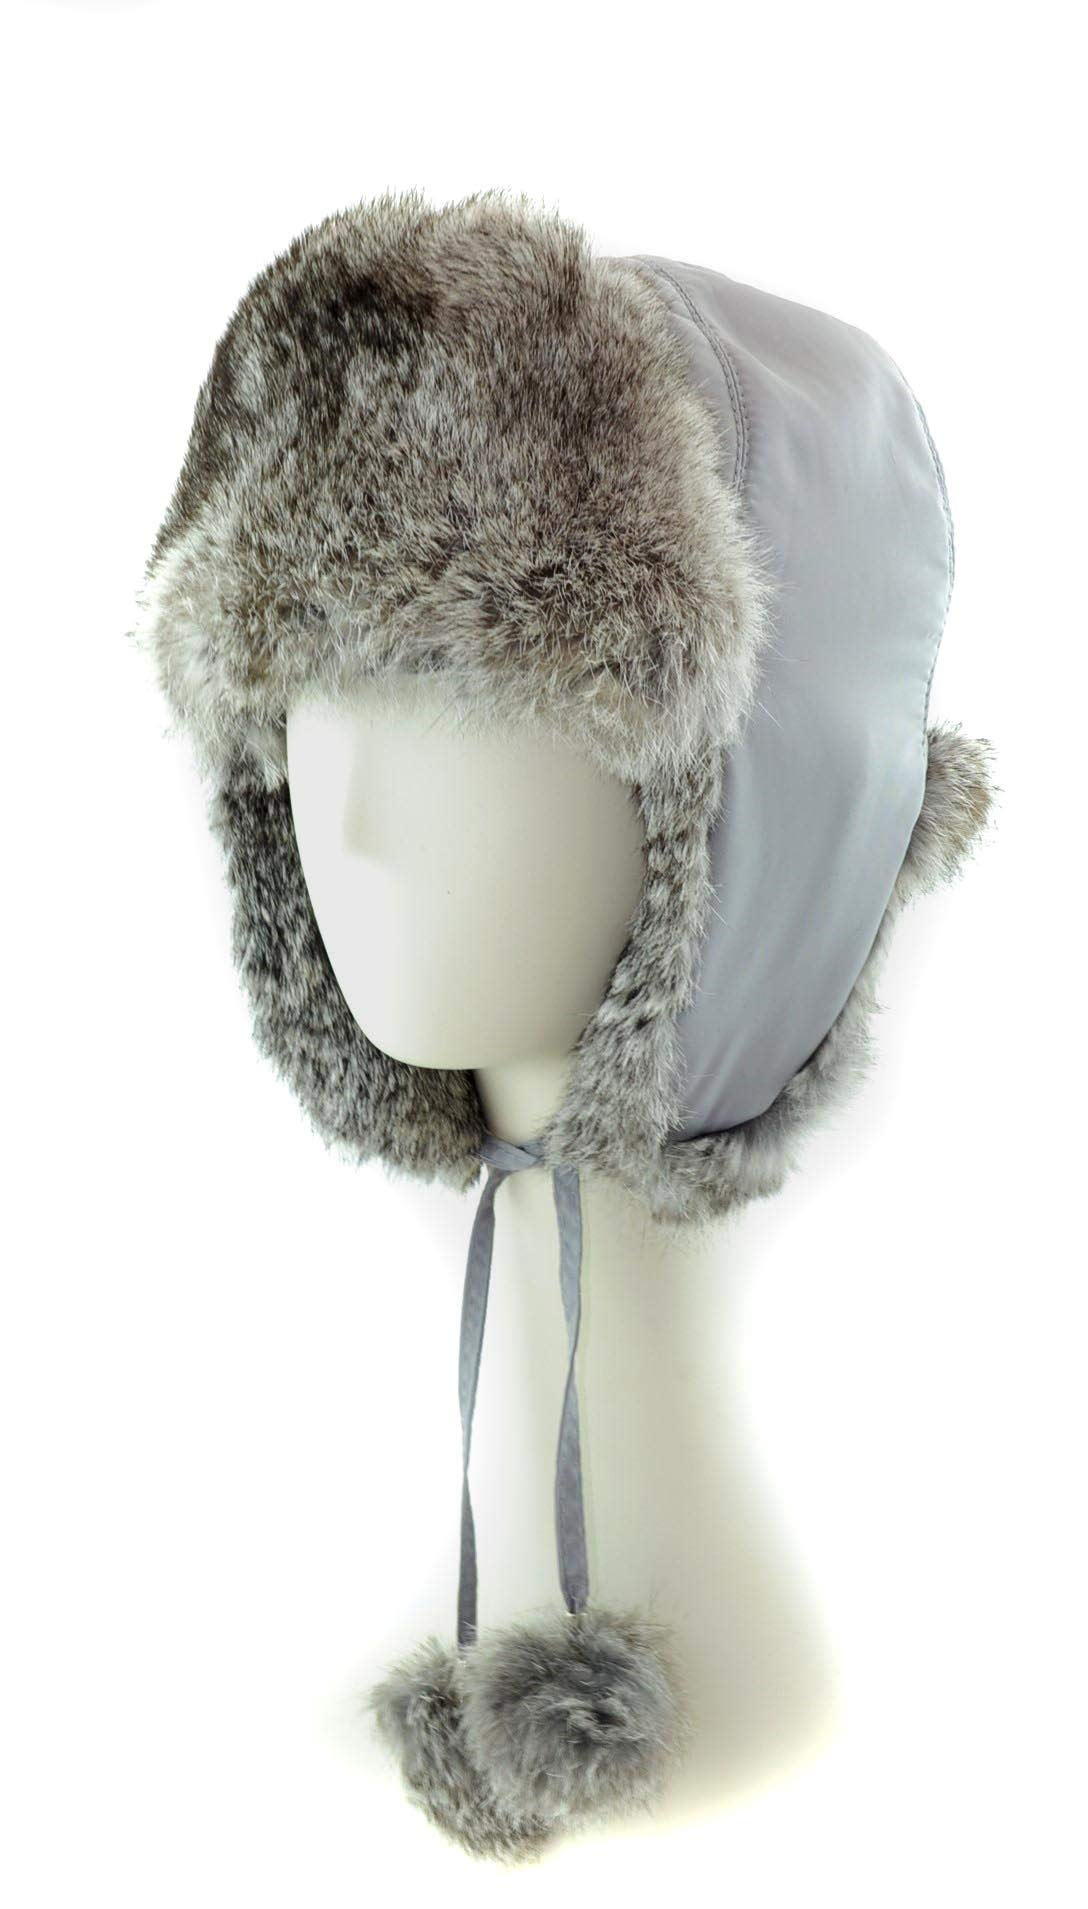 surell Genuine GreyTrapper Rabbit Fur Aviator Hat with Poms - Warm Bomber Trooper Hat - Perfect Winter Luxury Gift